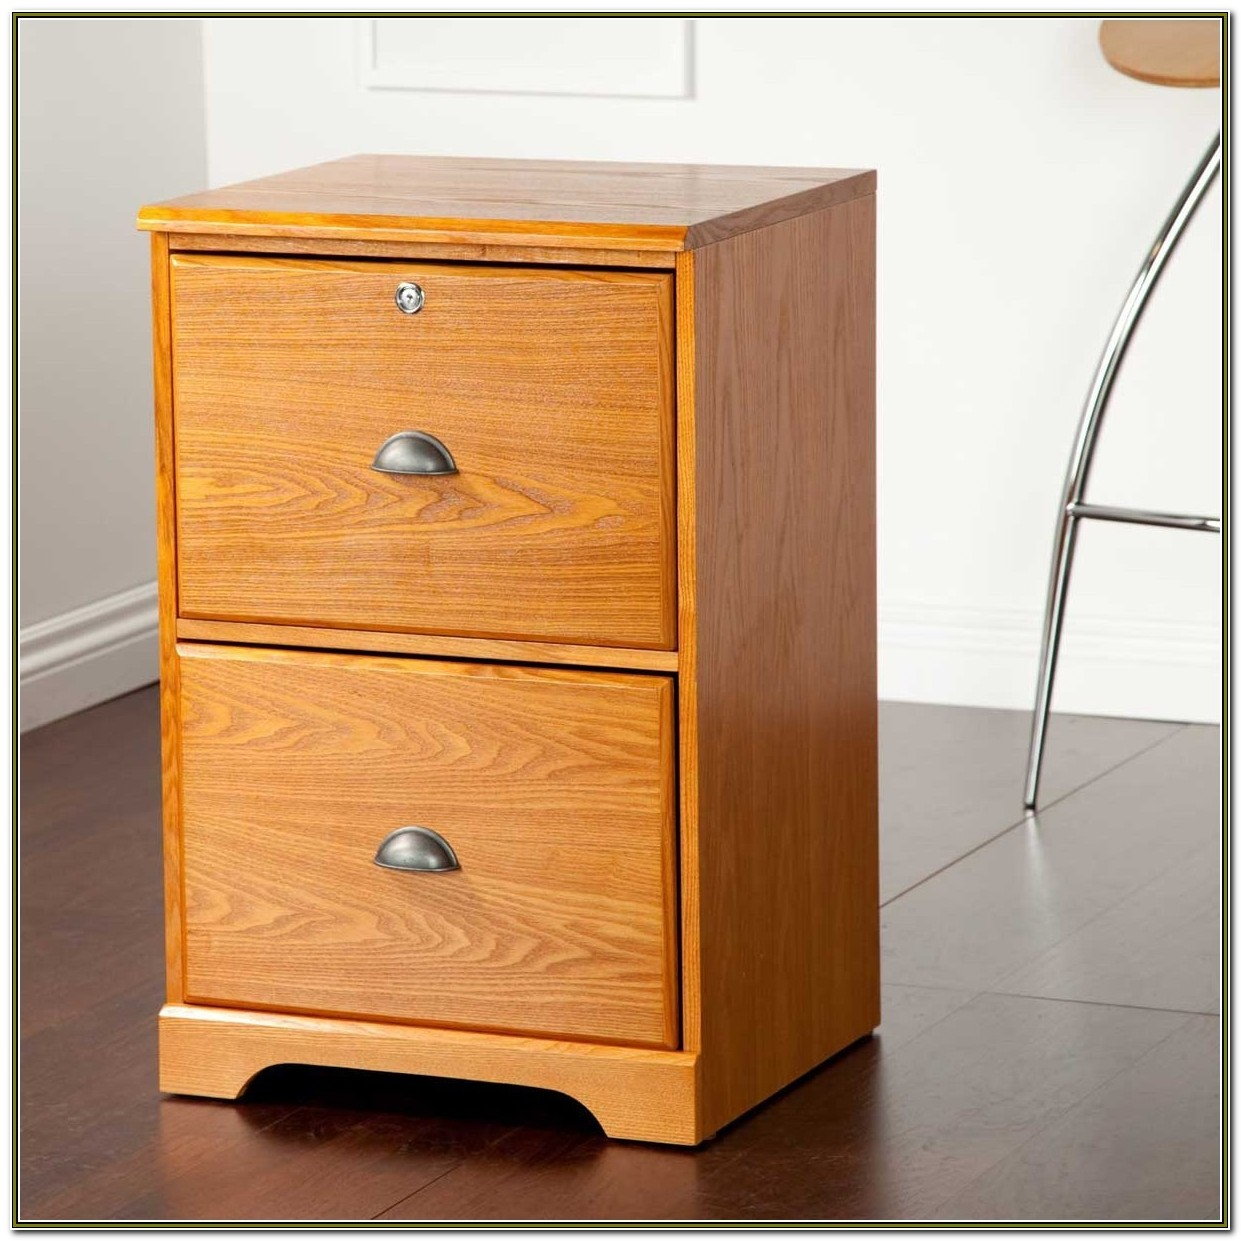 2 Drawer Wood File Cabinets